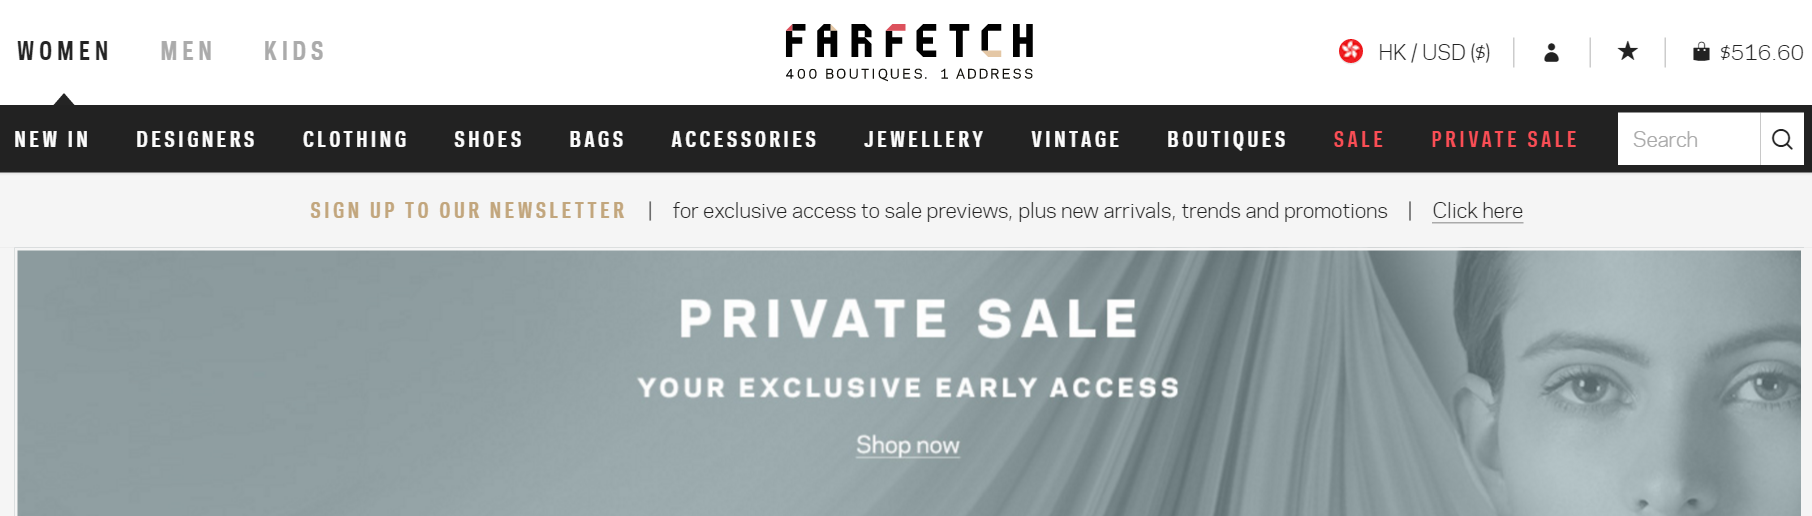 farfetch.com   a new way to shop for fashion